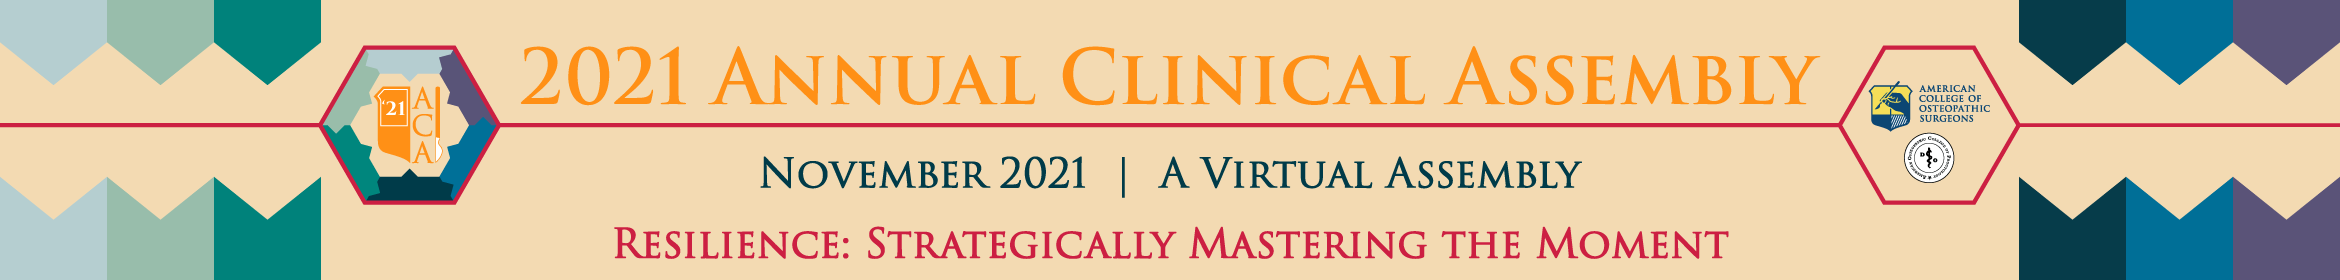 2021 Annual Clinical Assembly  Main banner